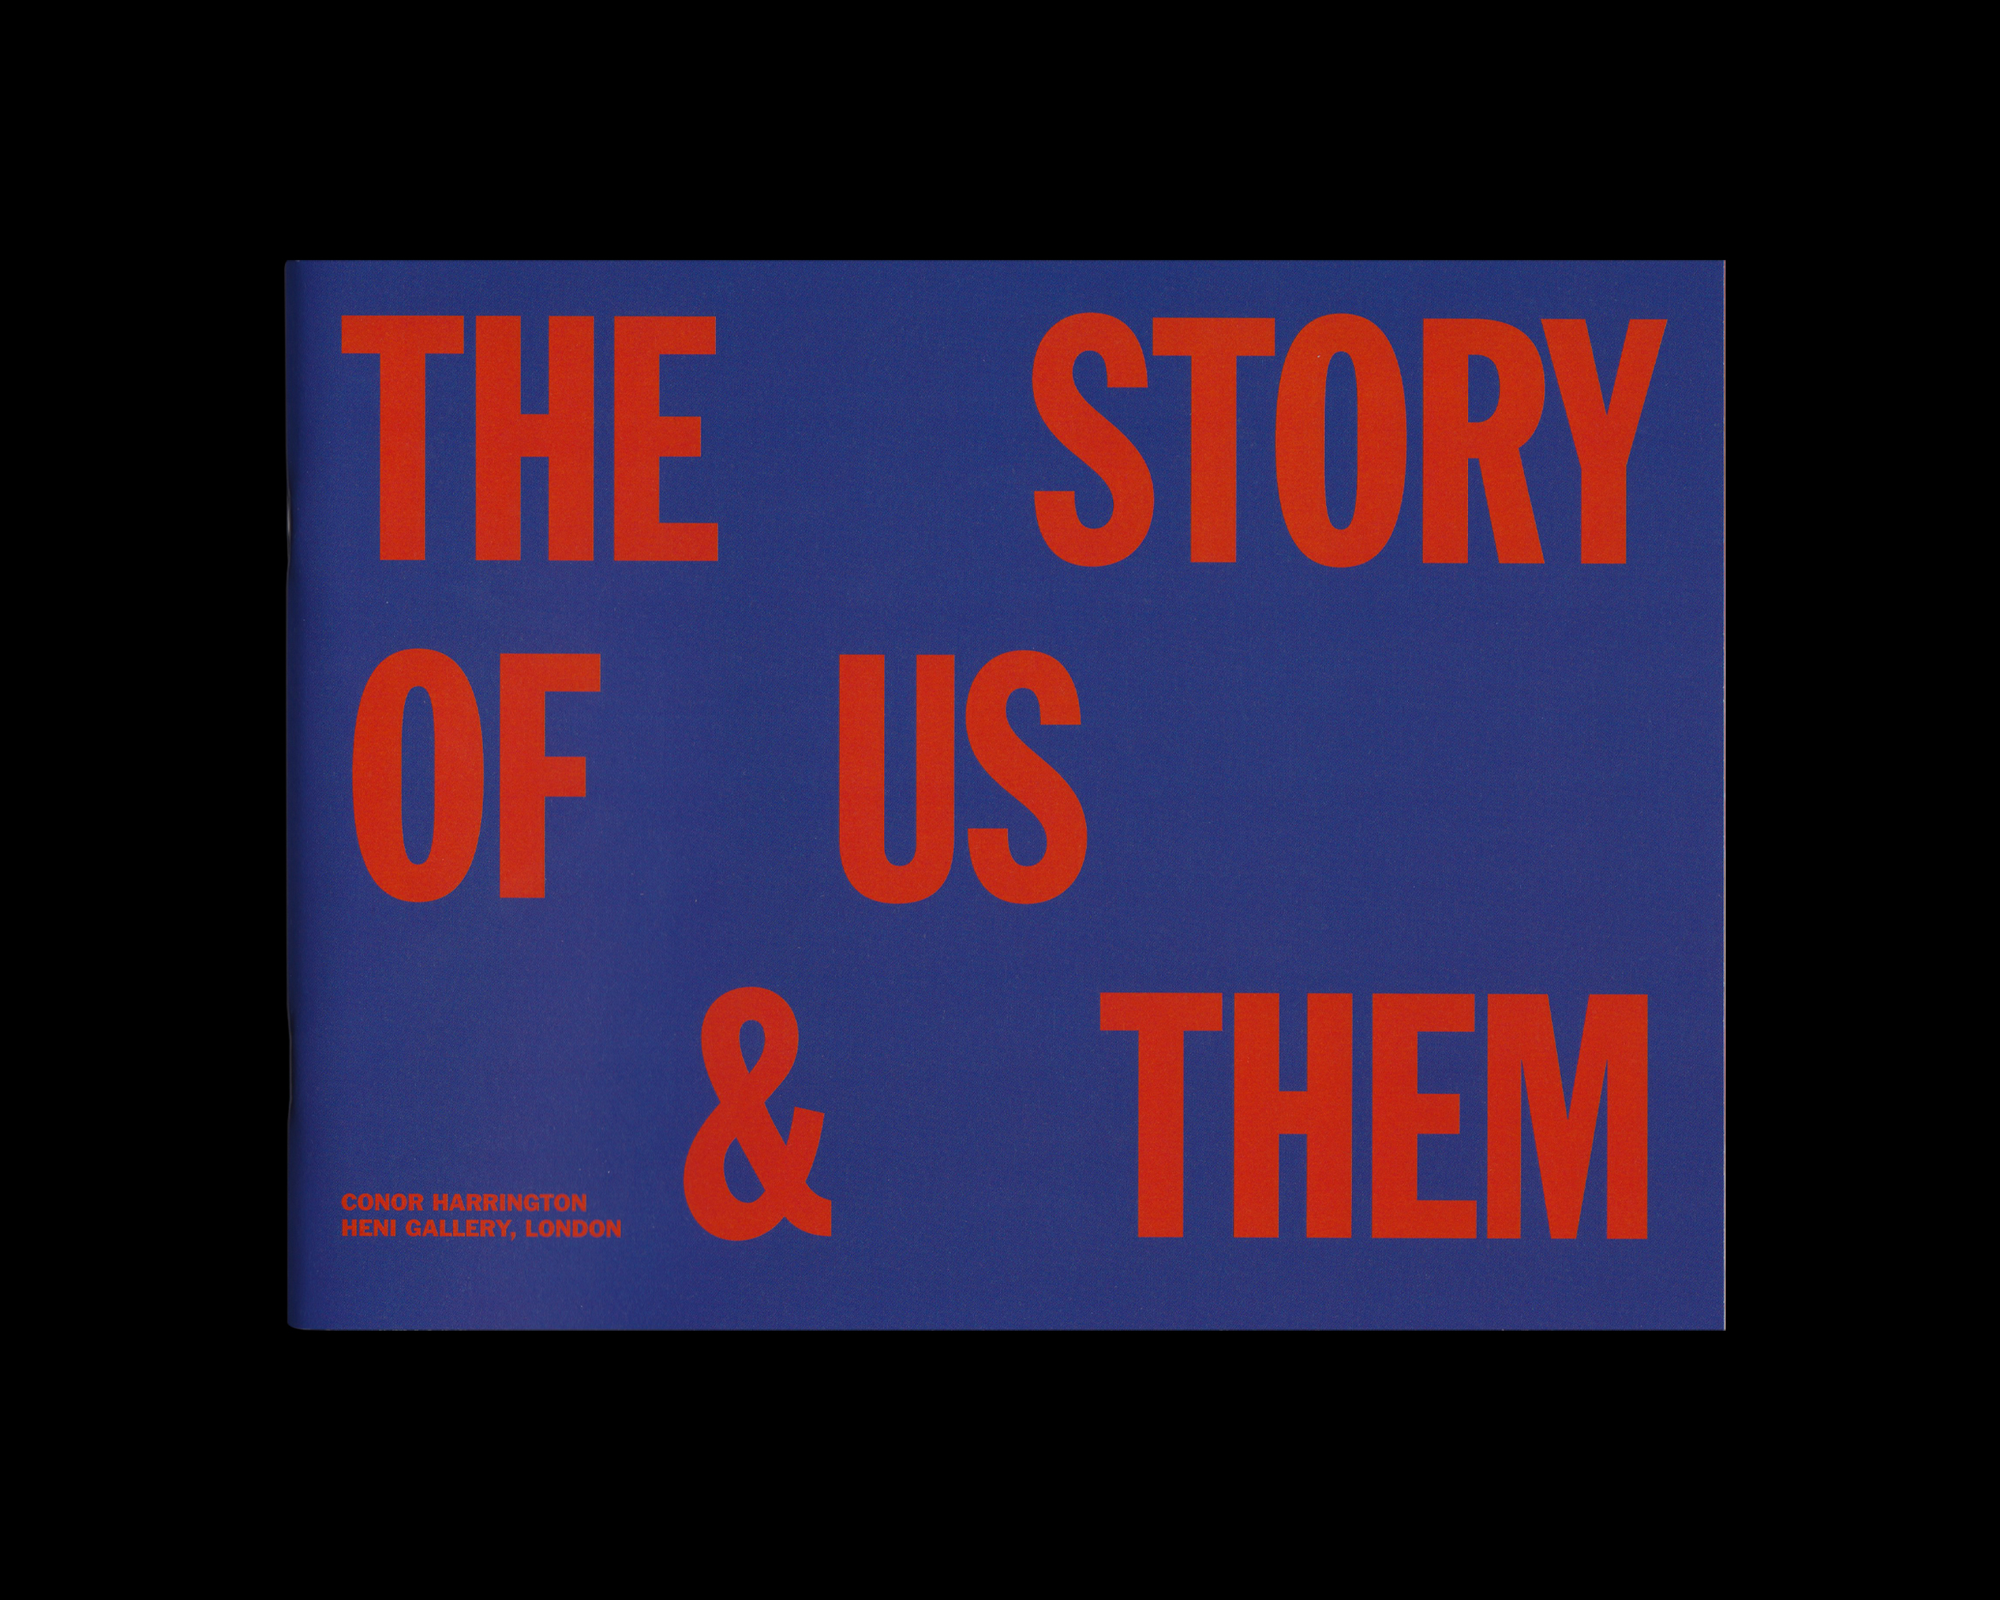 Cover image: The Story of Us & Them